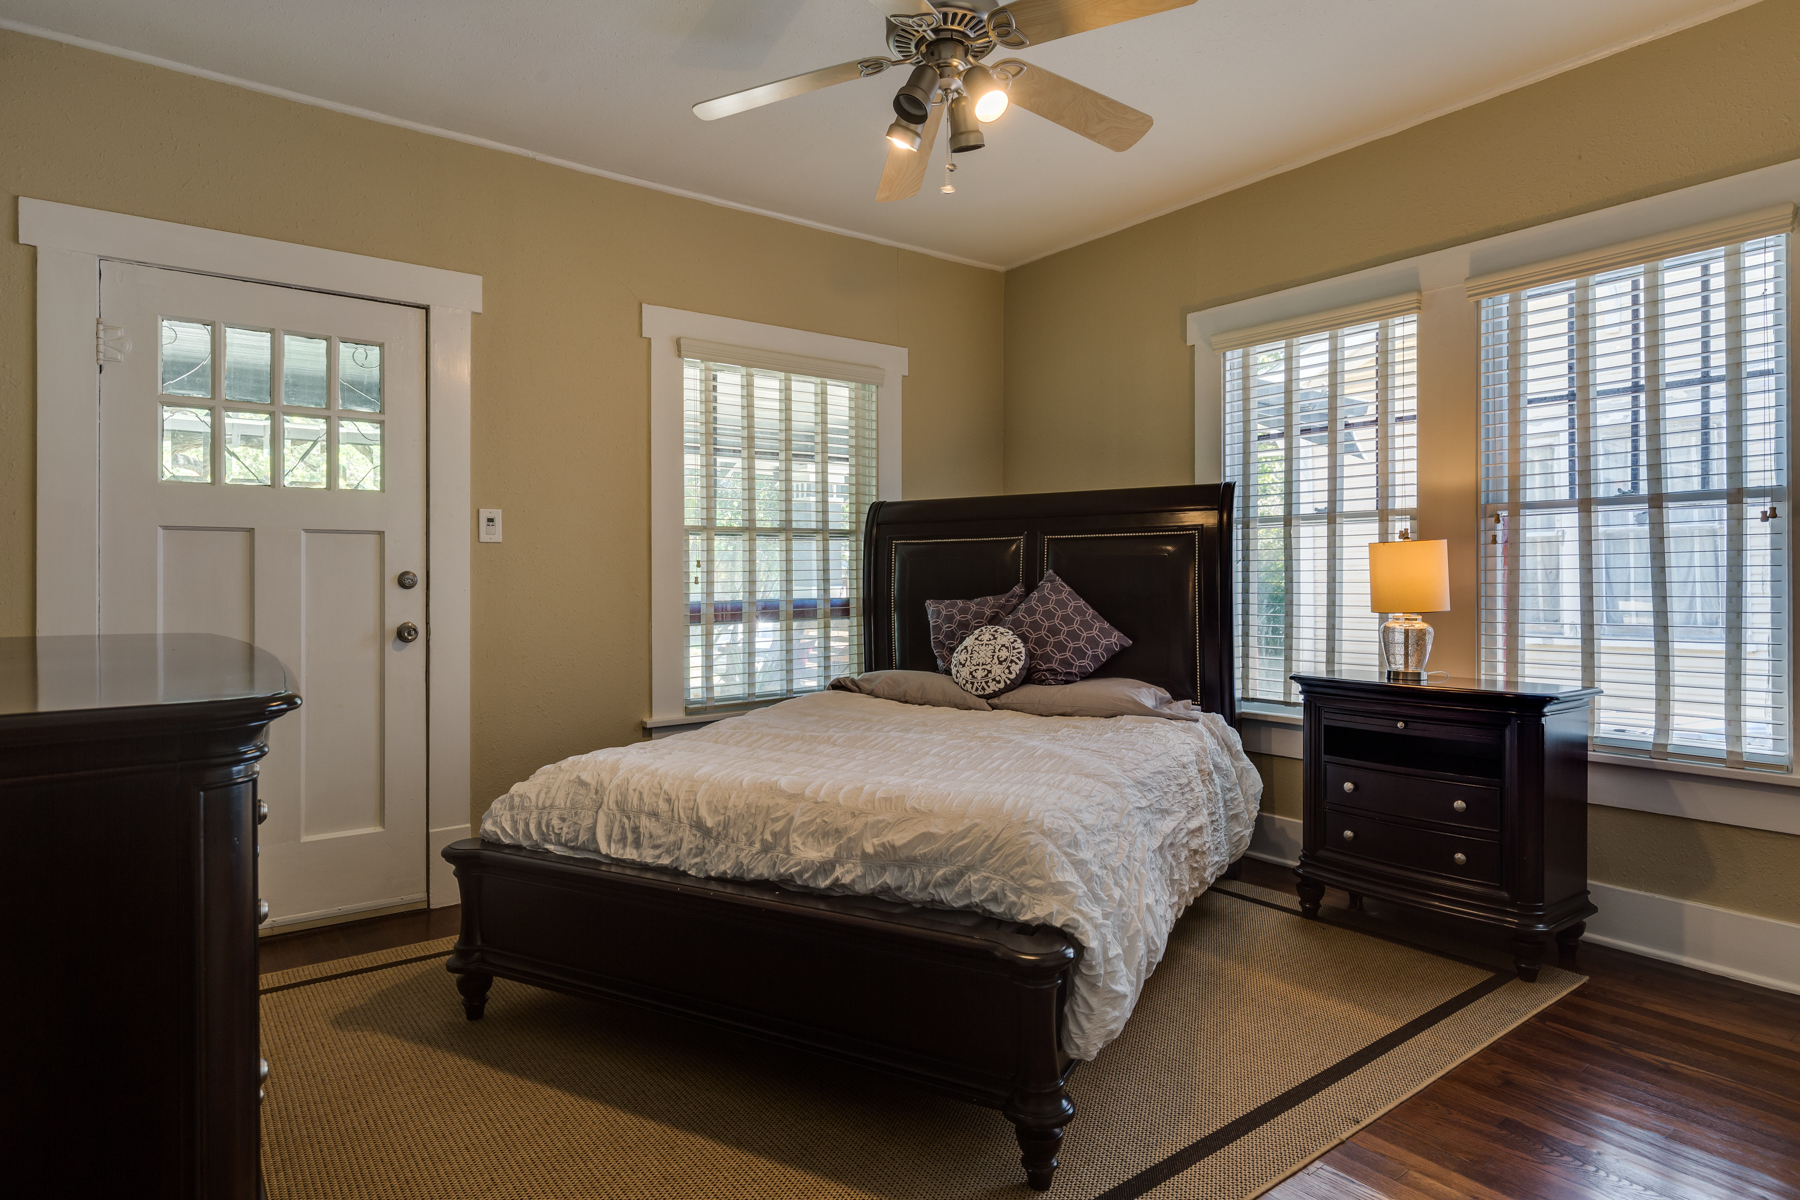 Additional photo for property listing at Urban Bungalow in Mahncke Park 346 Thorman Pl San Antonio, Texas 78209 United States